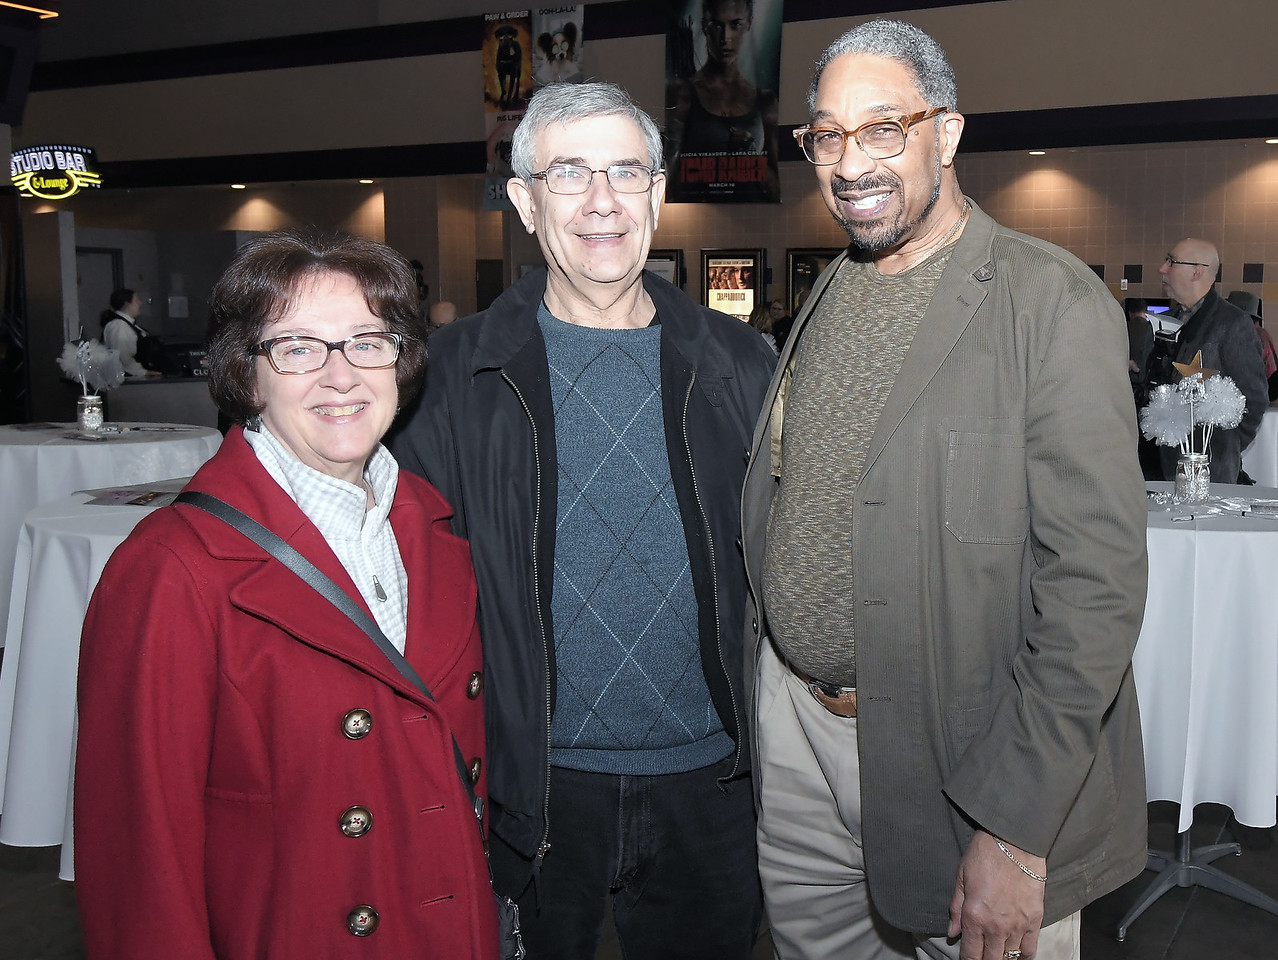 """25th Annual """"Evening at the Movies"""" fundraiser at the MJR Theater on Van Dyke at 15 Mile in Sterling Heights.Photo courtesy of The Resolution Center"""